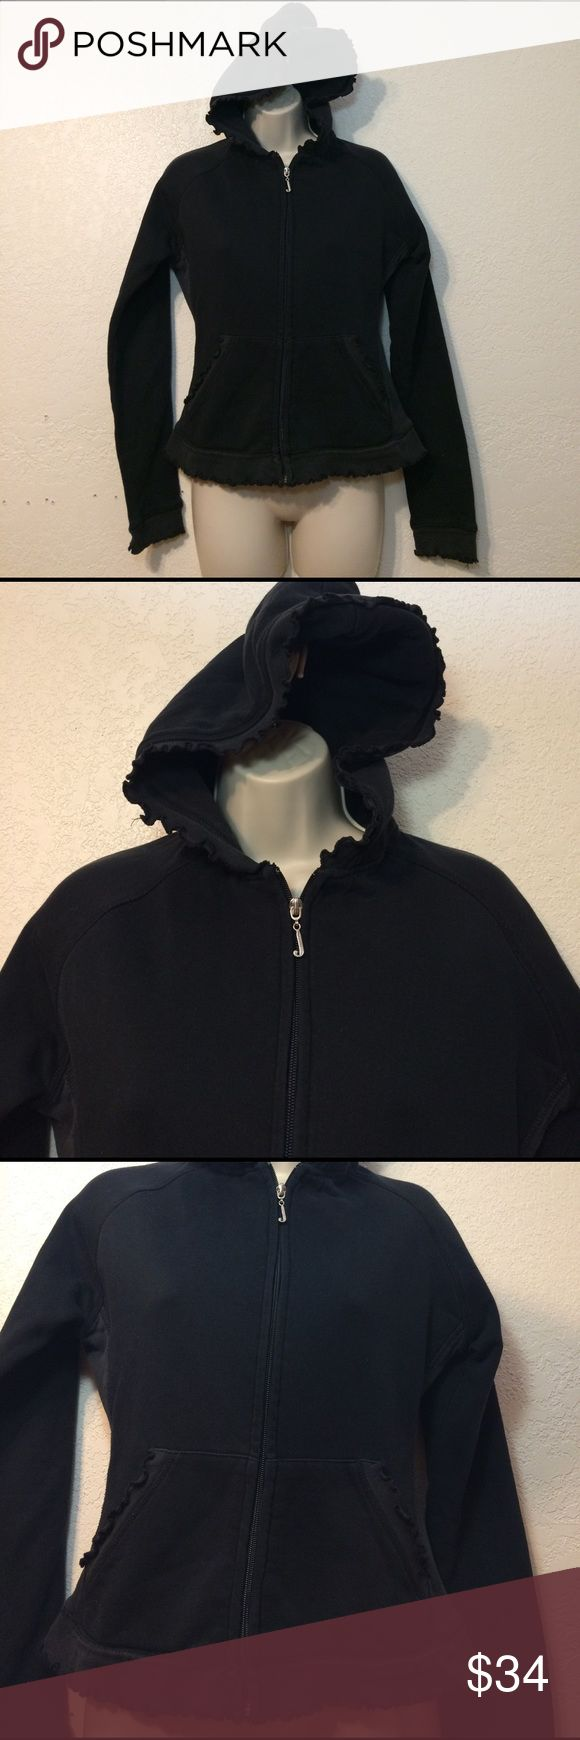 Juicy couture black full zip hoodie medium Juicy Couture Women's black long sleeve full zip up hoodie.  Ruffle embellishments around hem, 2 side pockets, back has a big cherry Print with the number 8. 100% Cotton size medium nwot Juicy Couture Tops Sweatshirts & Hoodies